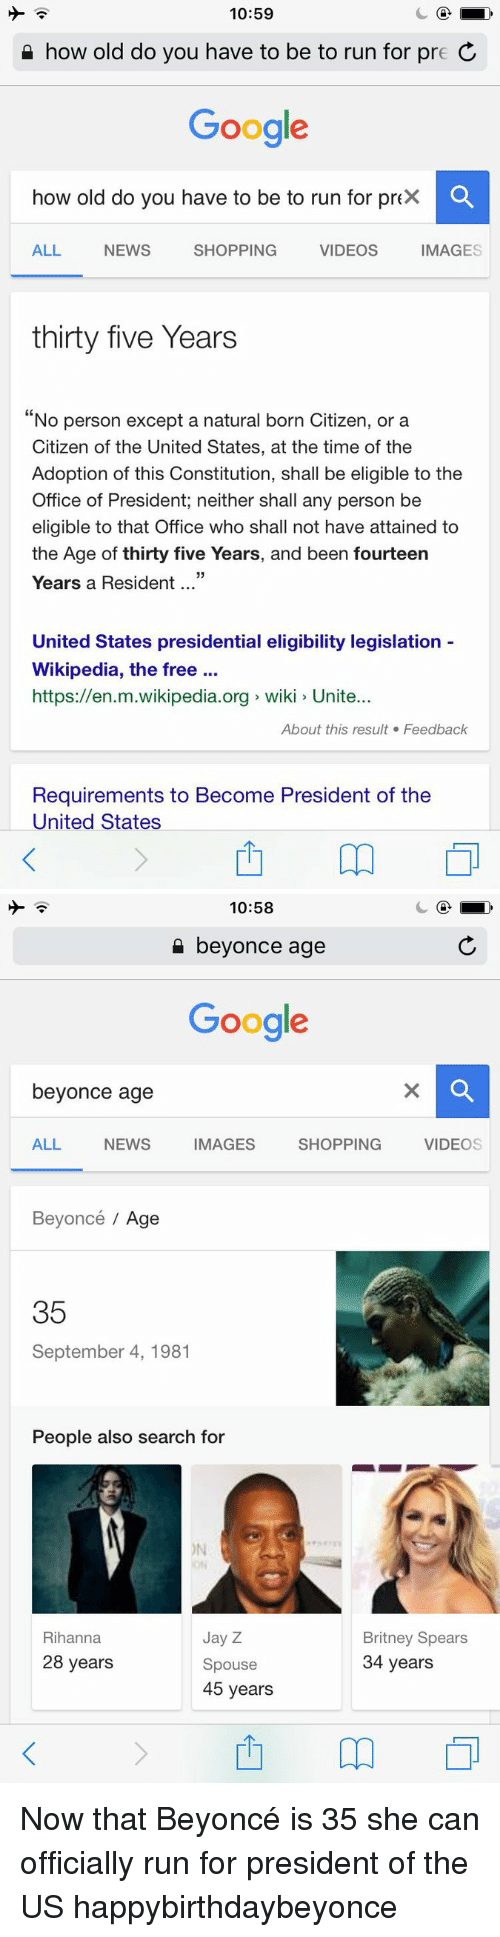 What age can you run for president